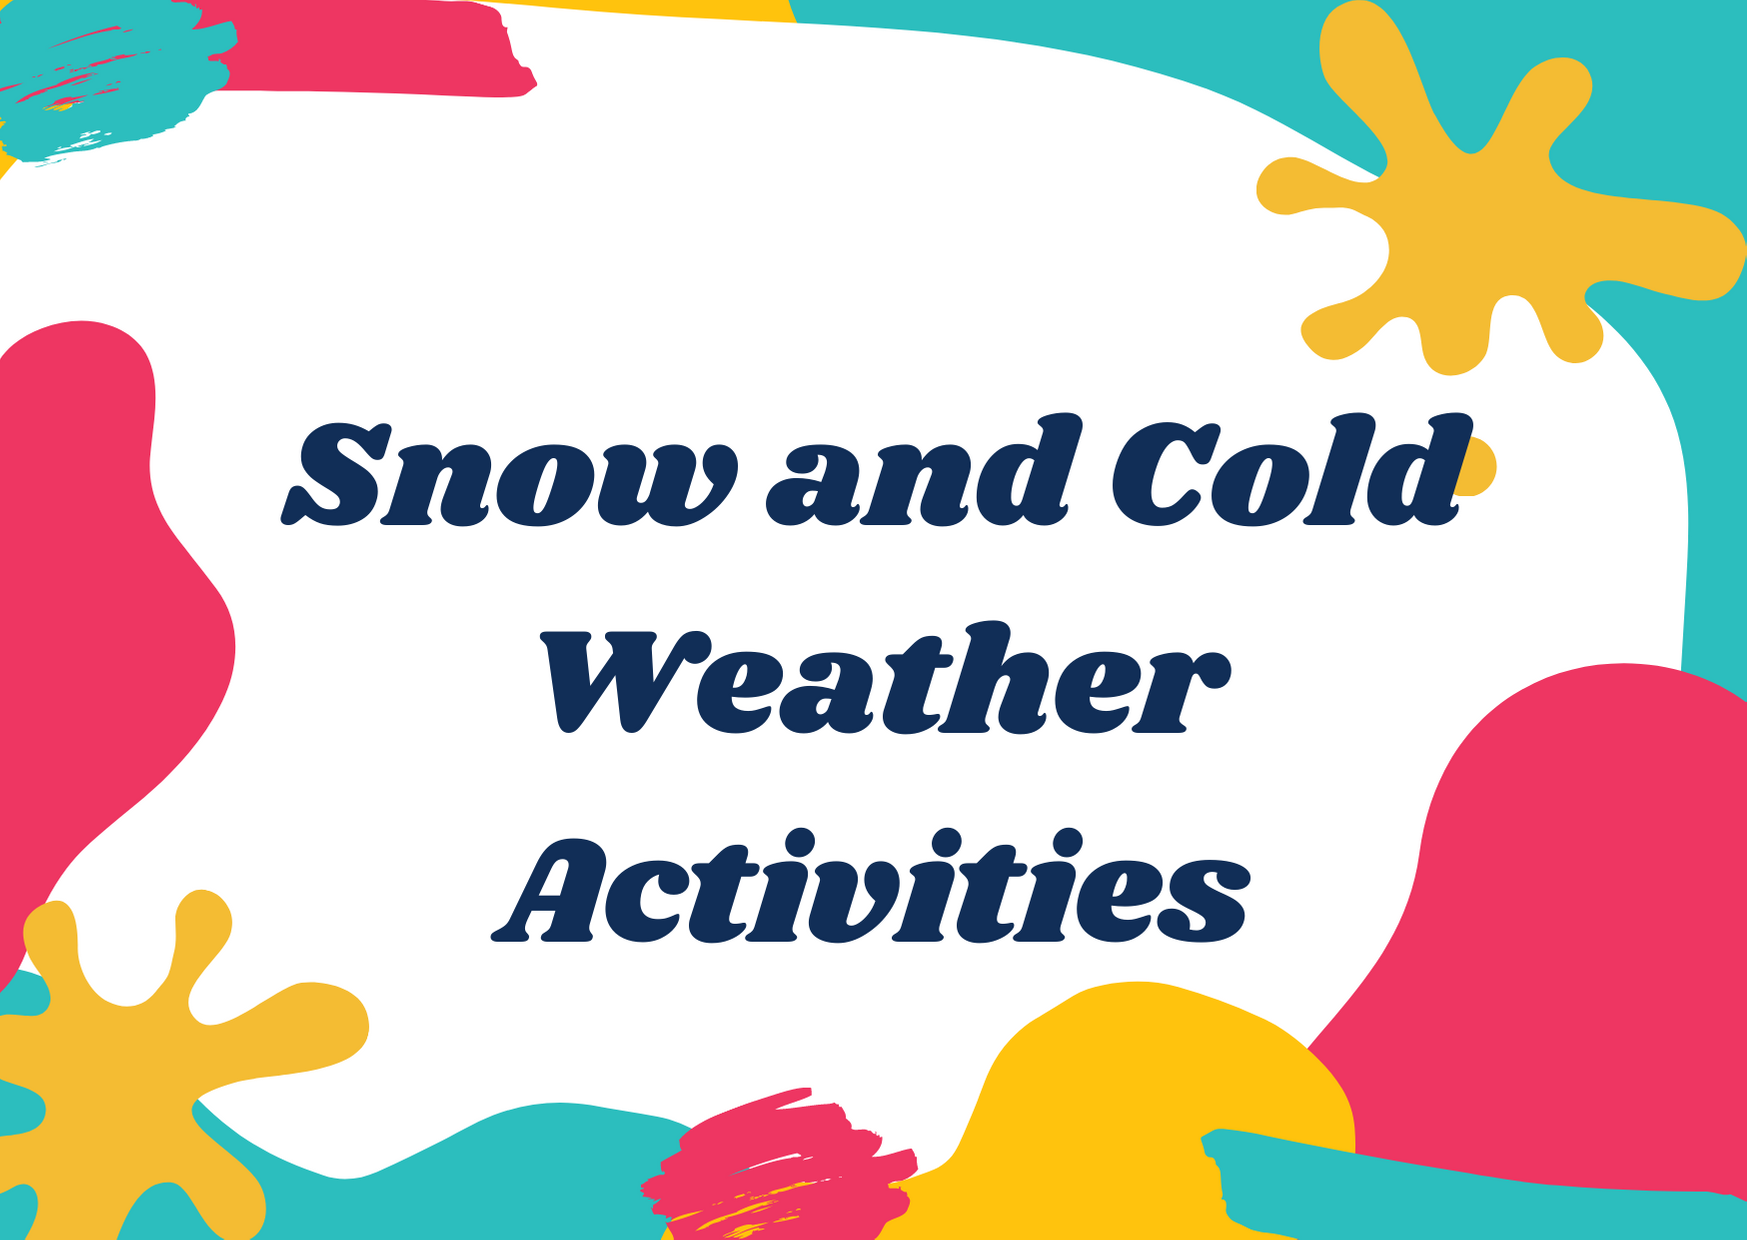 Snow and Cold Weather Activities